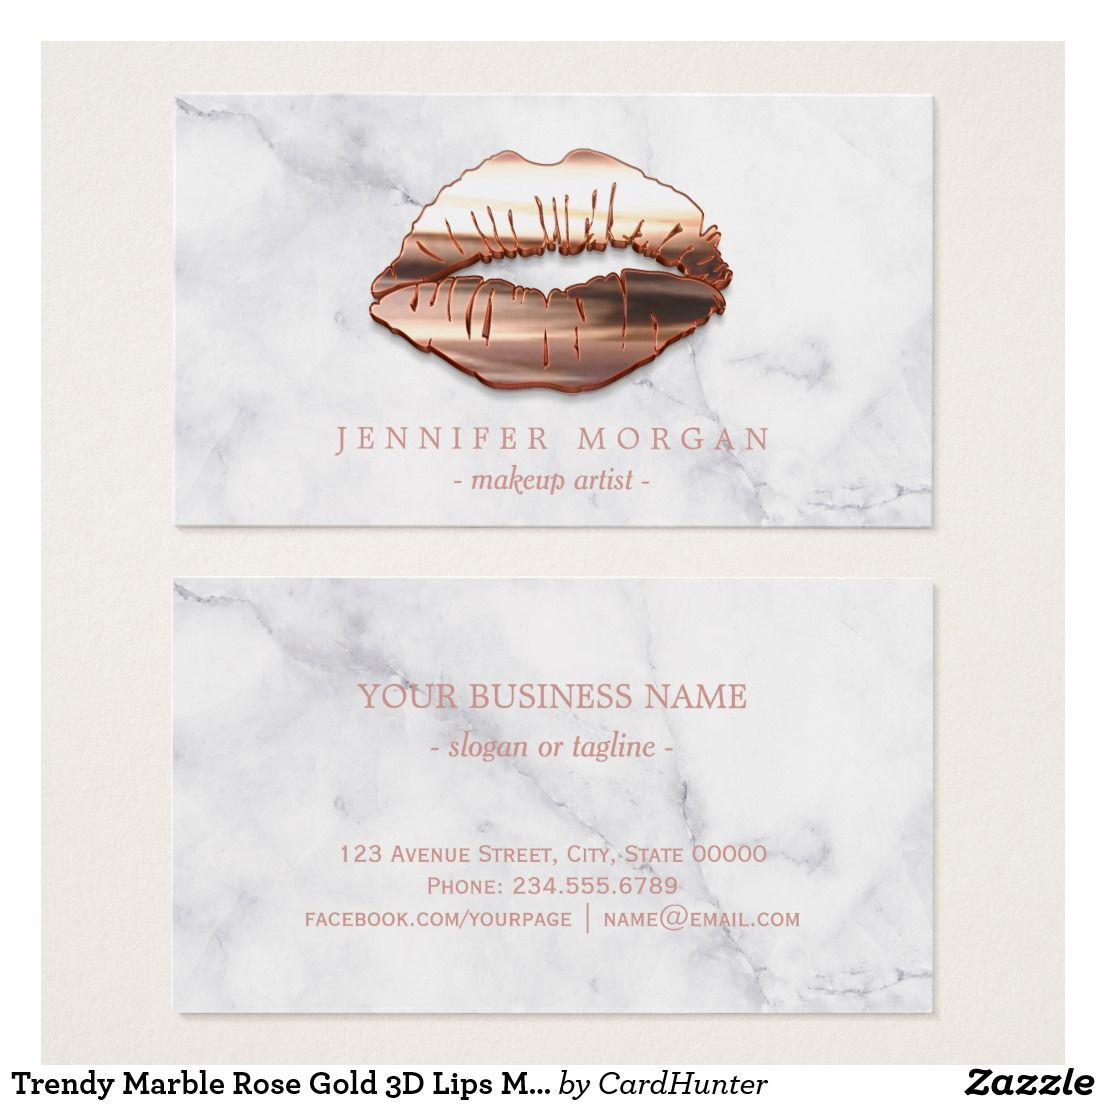 Business card makeup artist business cards business cards and logos trendy marble rose gold 3d lips makeup artist business card colourmoves